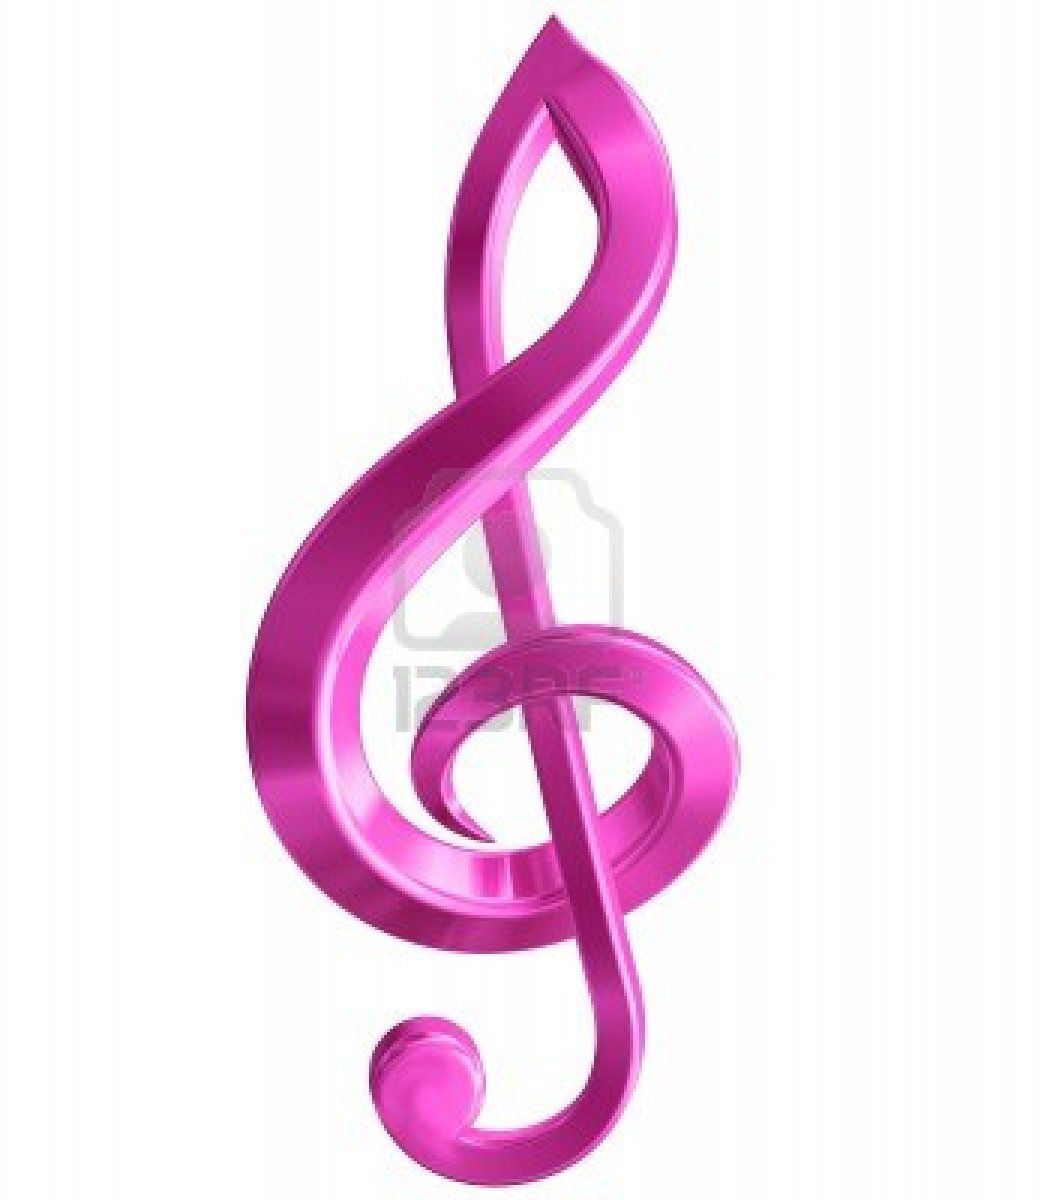 Colorful Music Notes Symbols Gilaffirmations